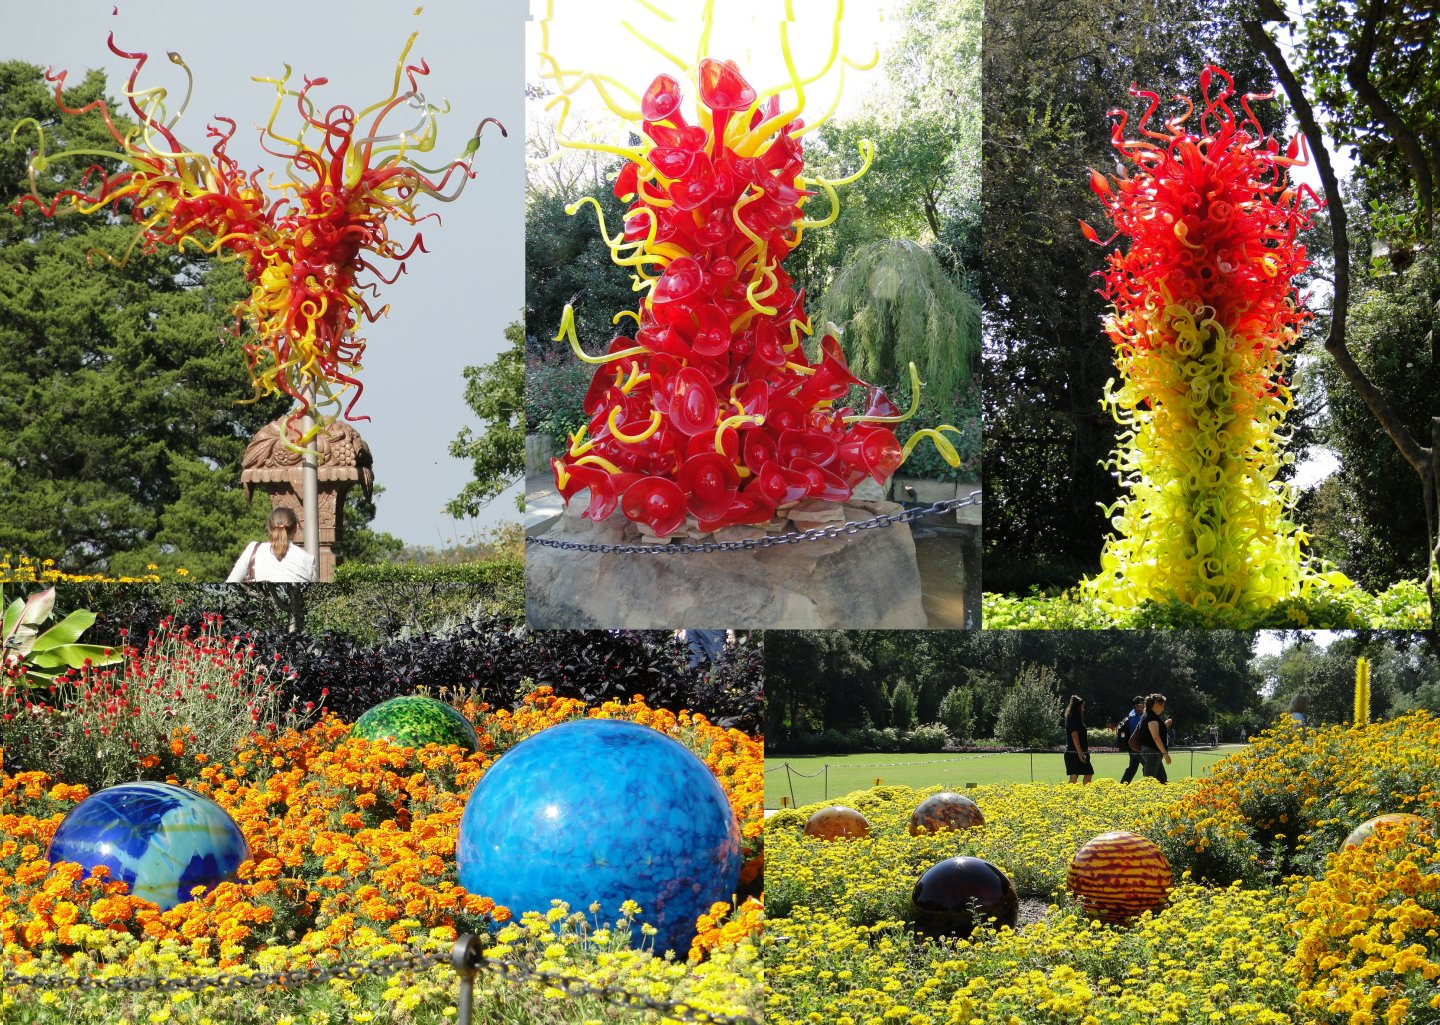 Chihuly balls in flower beds and tangled towers of various forms in yellow and red